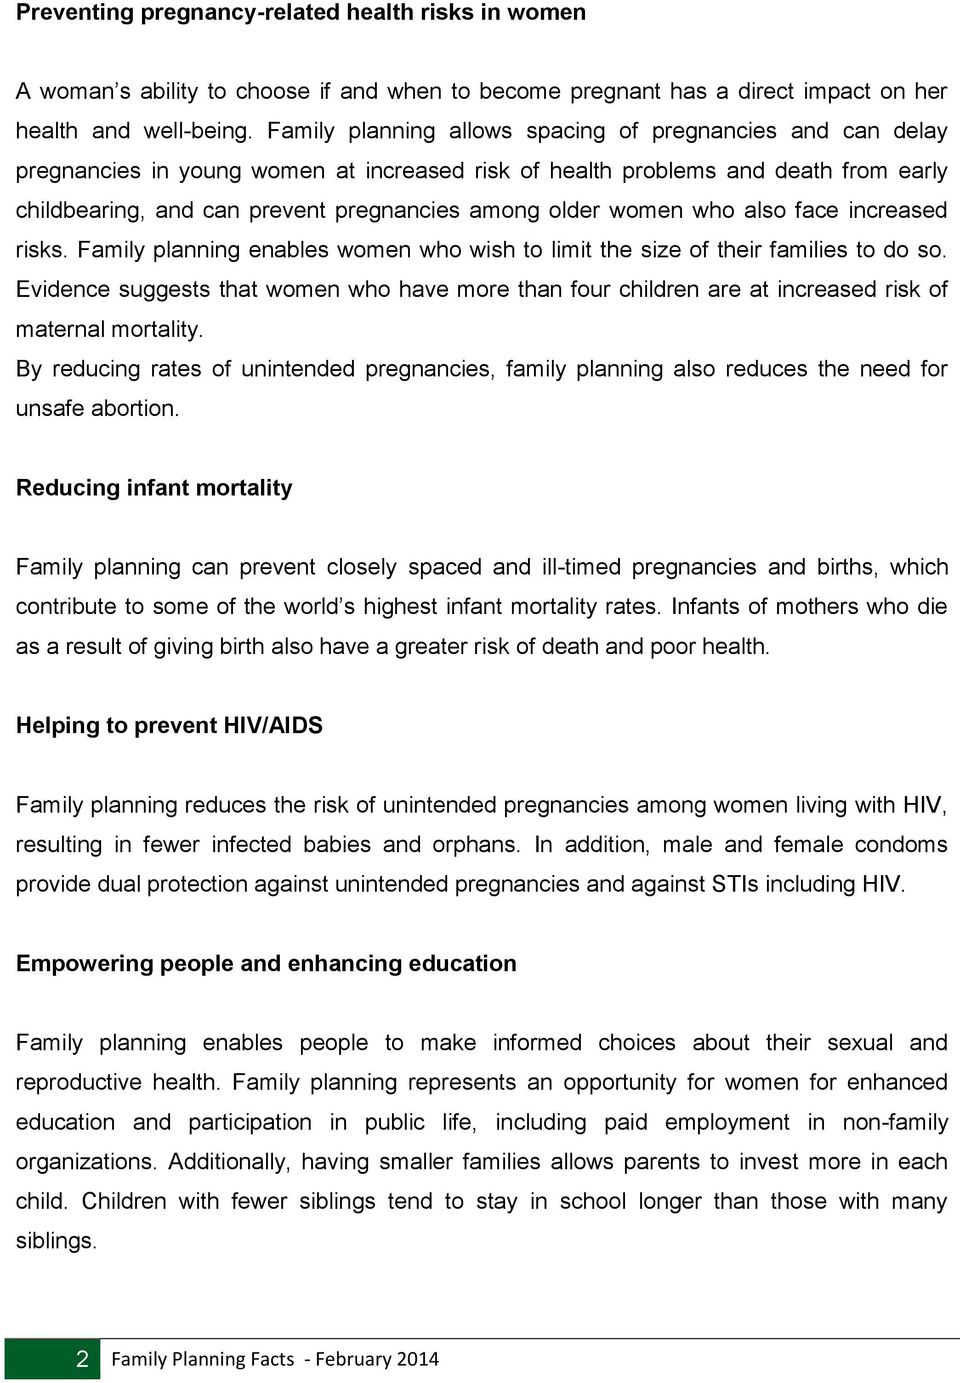 women who also face increased risks. Family planning enables women who wish to limit the size of their families to do so.